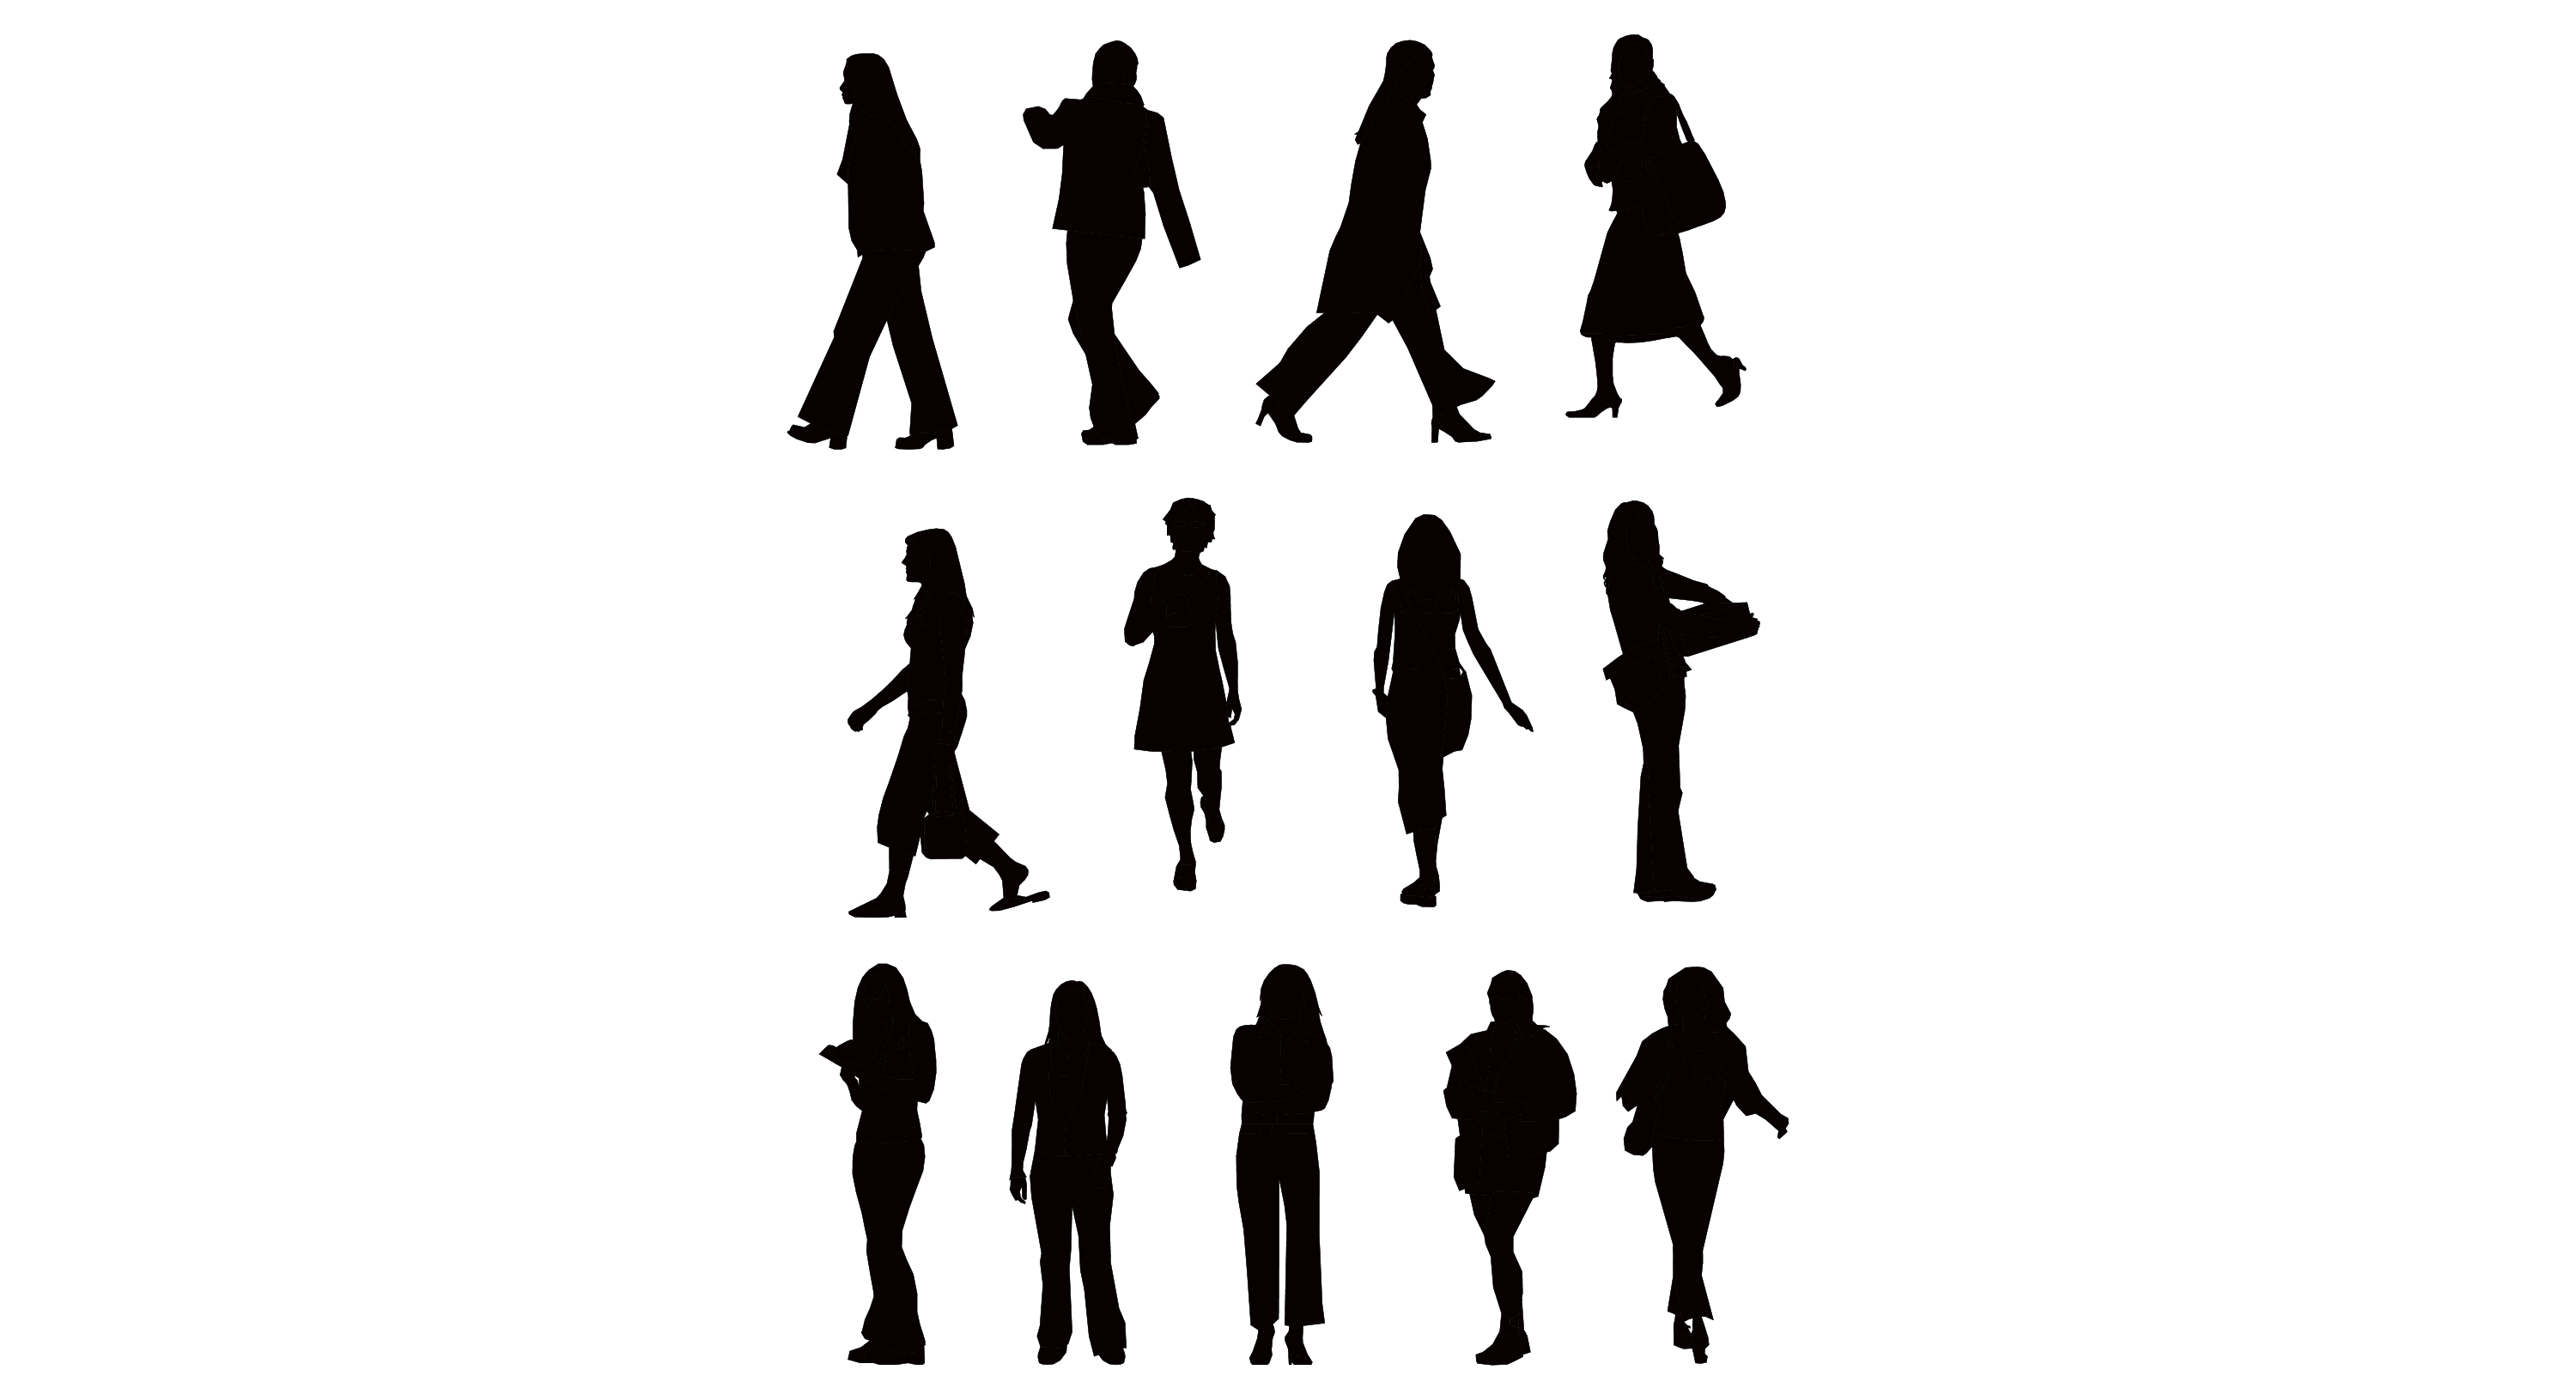 Pin by Nutthanicha on ขนาด | Pinterest for Business People Silhouette Png  585hul